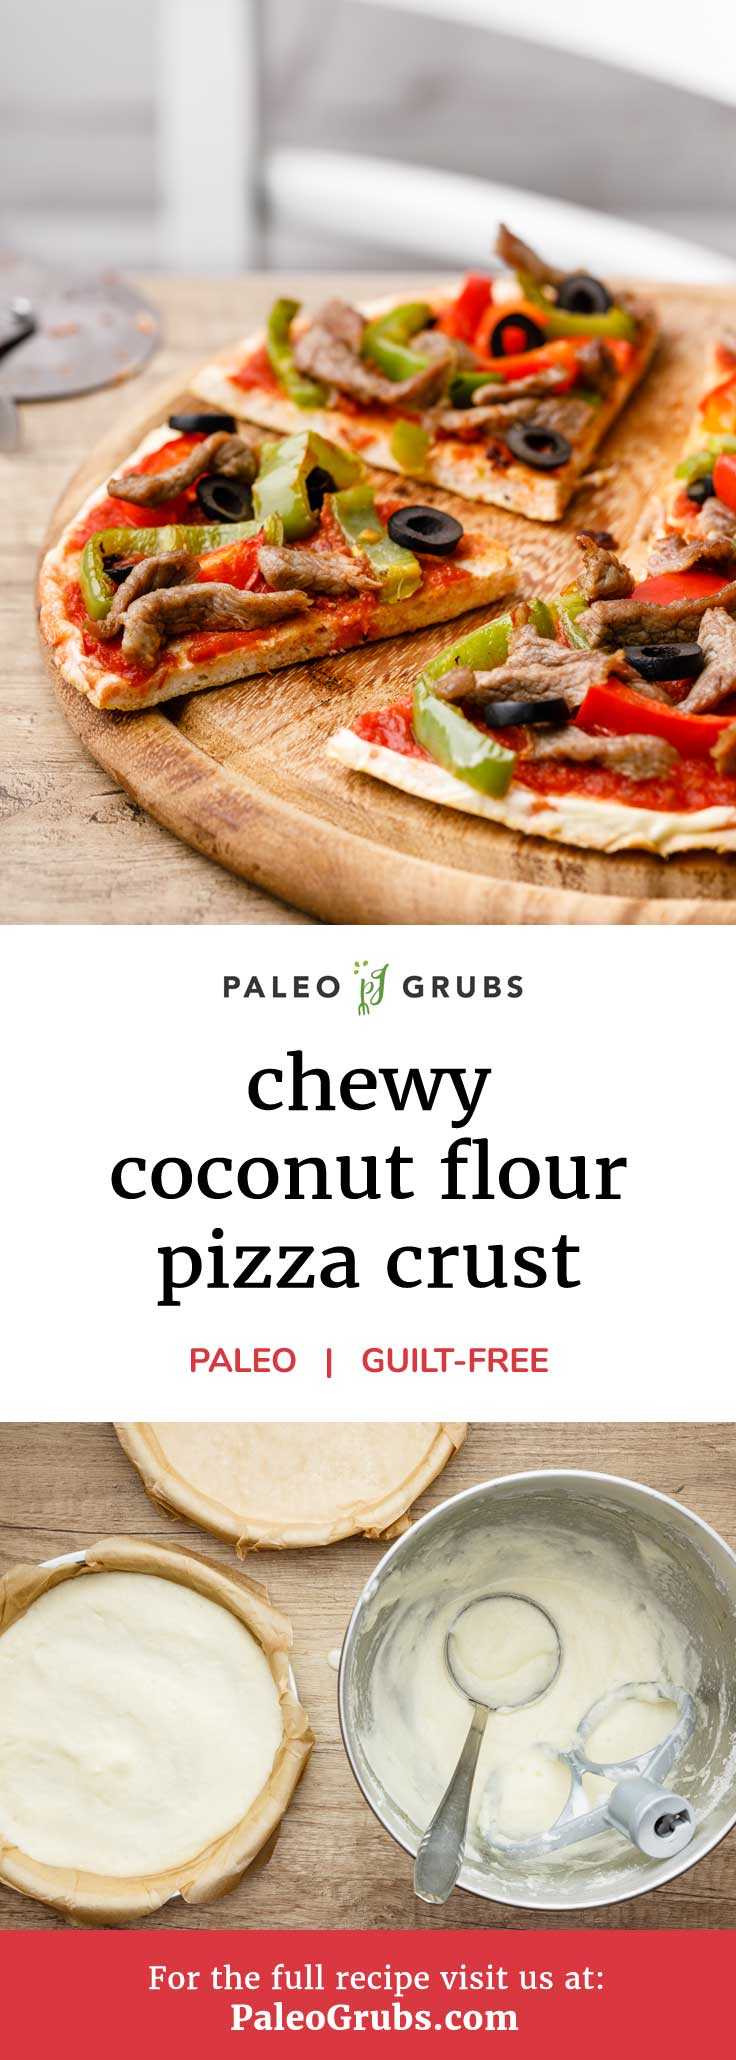 I have a hard time imagining what could possibly be better than enjoying a slice of pizza without feeling even an ounce of guilt for doing so. Thankfully, that's no pipe dream. It's a reality thanks to awesome paleo recipes like this chewy coconut flour pizza crust.